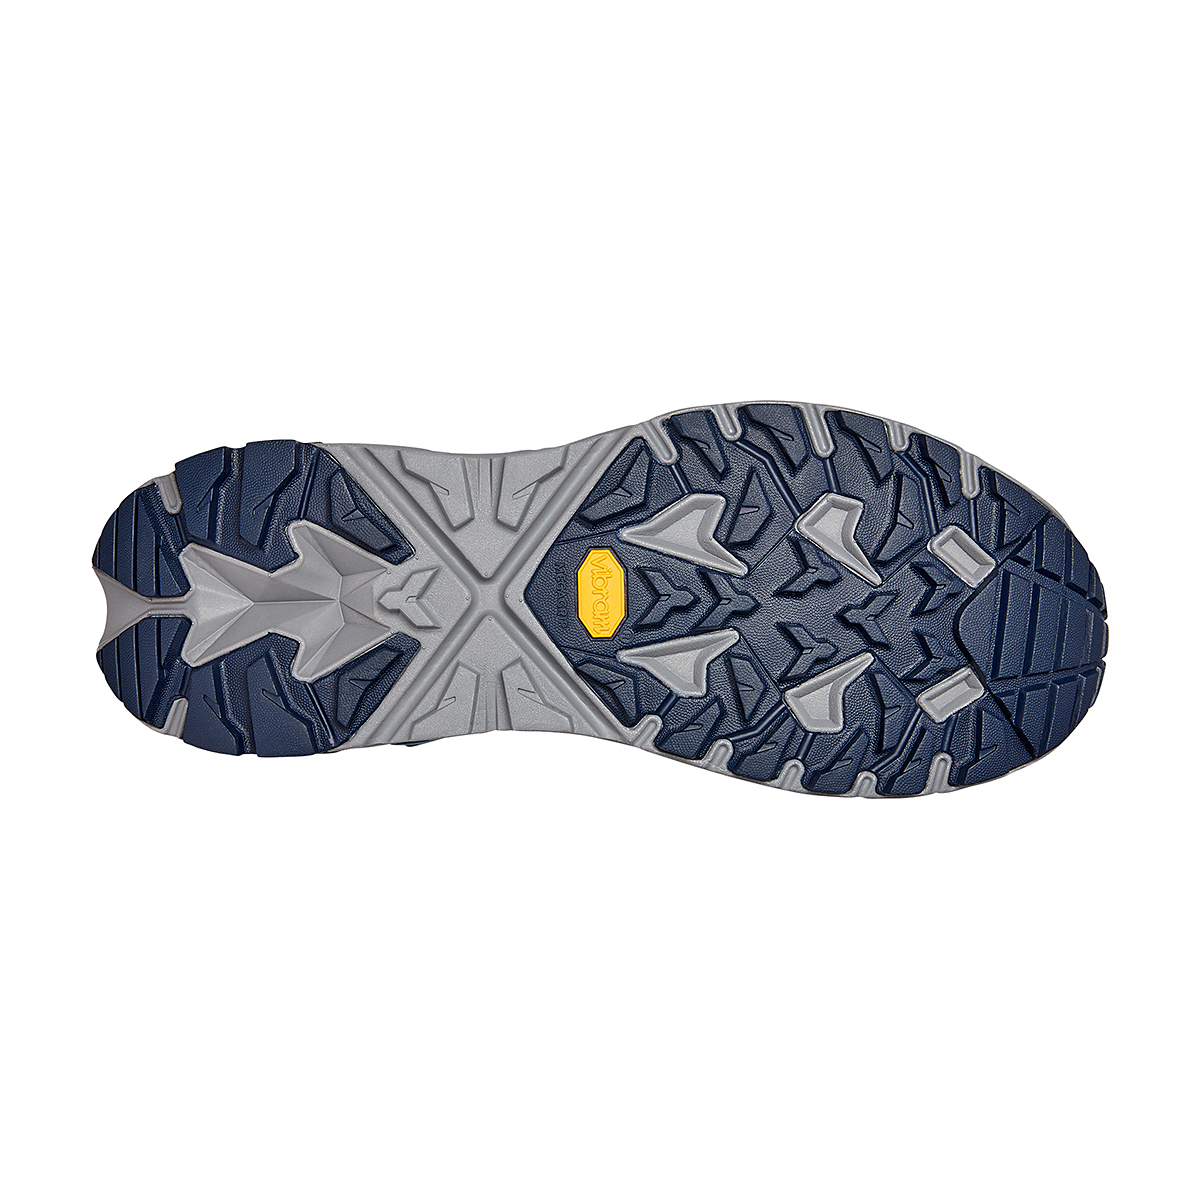 Men's Hoka One One Anacapa Mid Gore-Tex Trail Running Shoe - Color: Real Teal/Outer Space - Size: 7 - Width: Regular, Real Teal/Outer Space, large, image 6